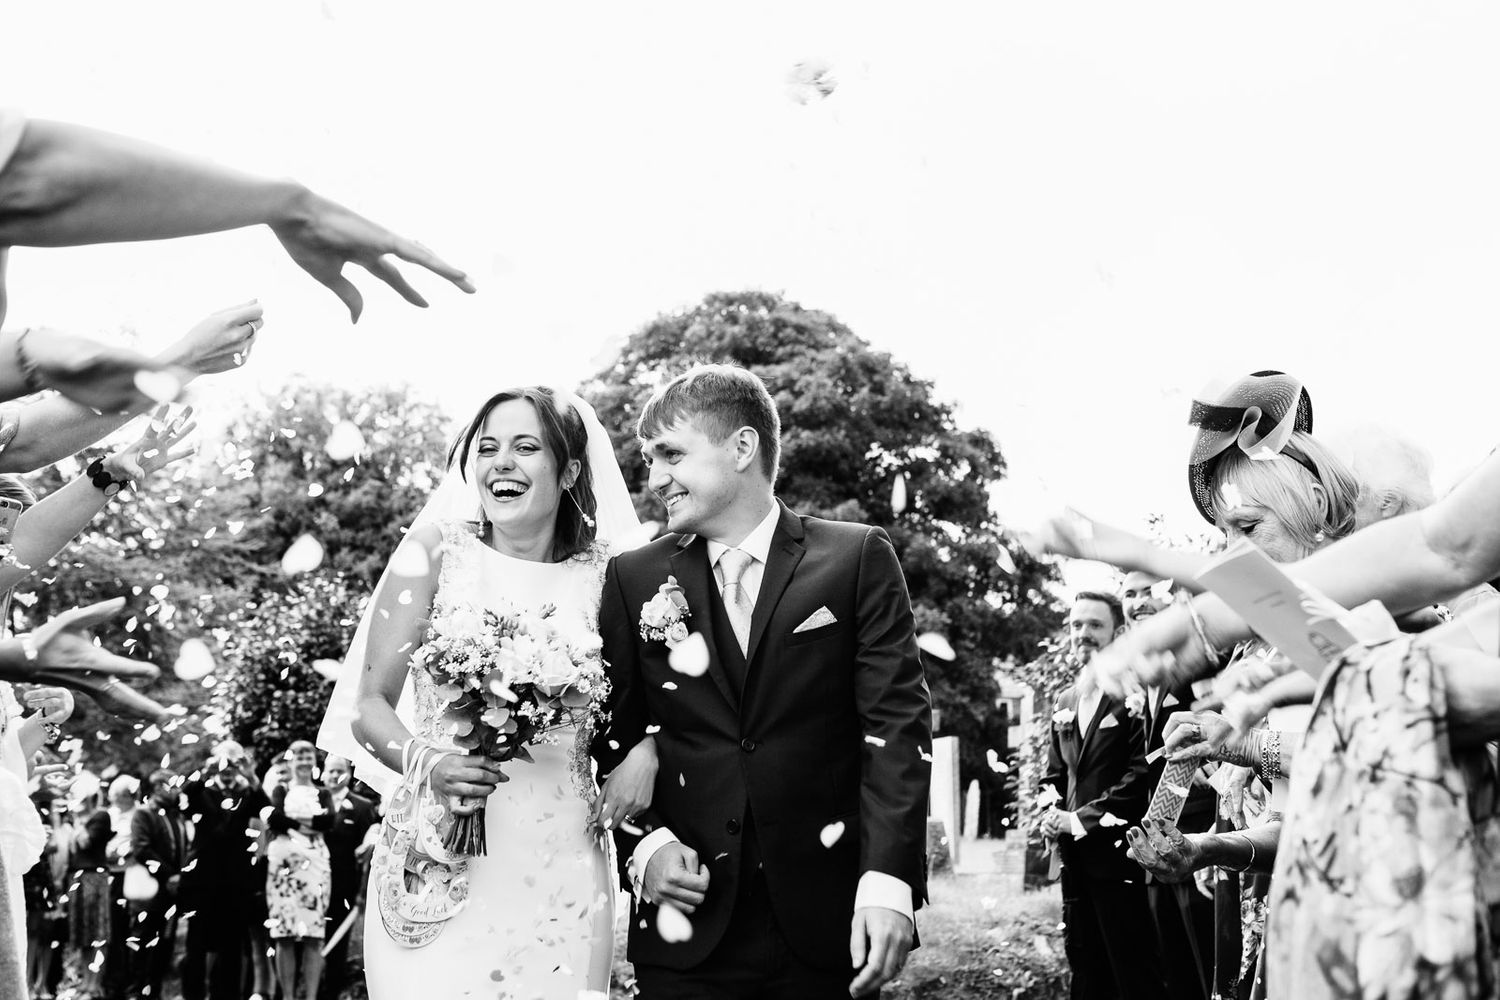 creative confetti wedding photography by Tuscany photographer Elizabeth Armitage